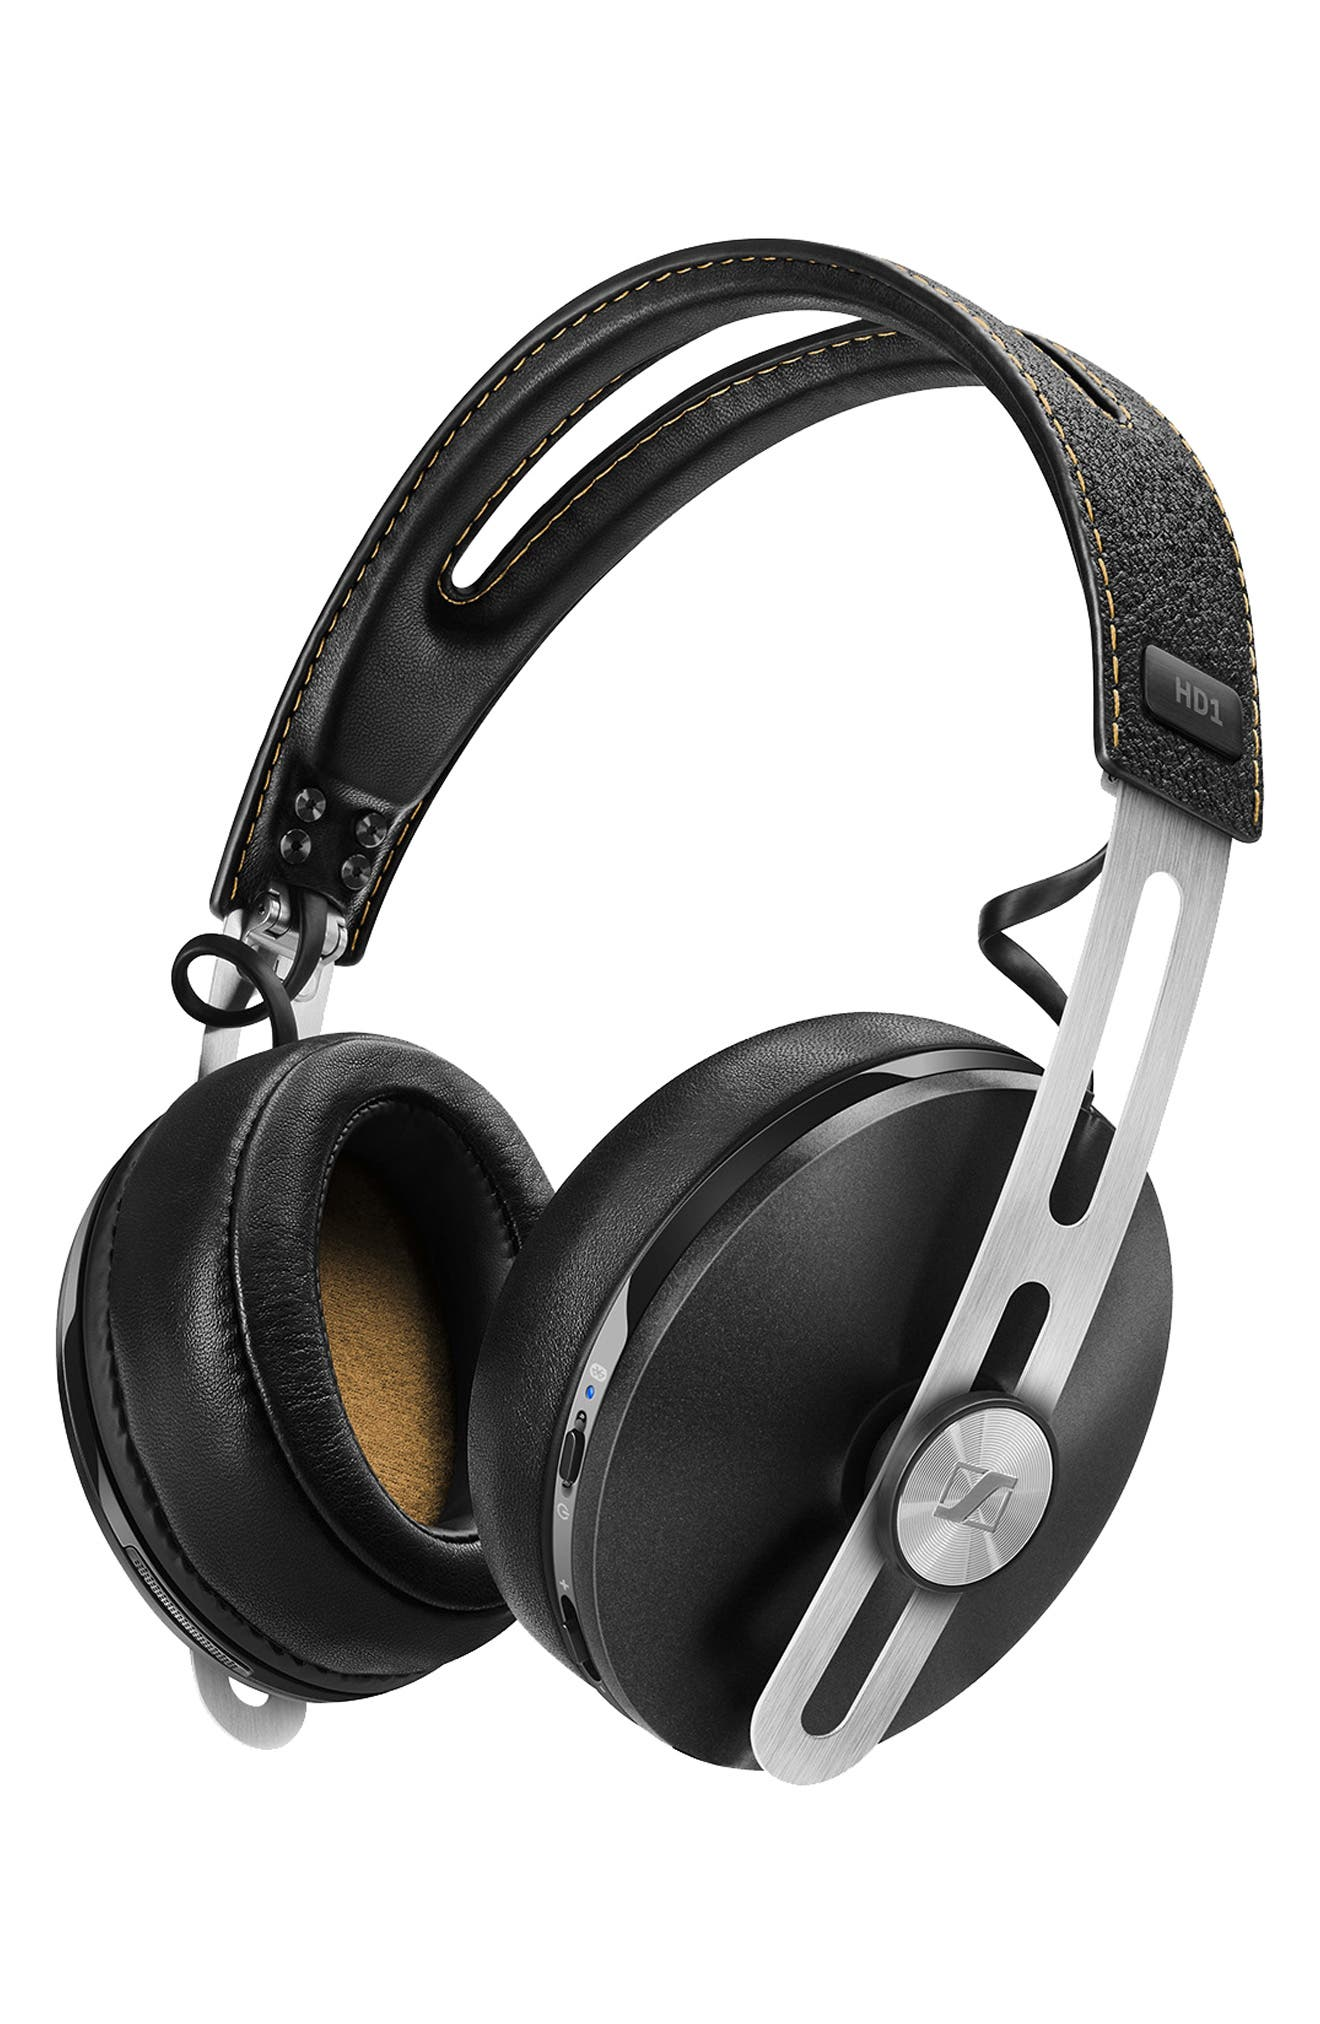 HD1 Wireless Bluetooth<sup>®</sup> Noise Cancelling Headphones,                             Alternate thumbnail 2, color,                             BLACK